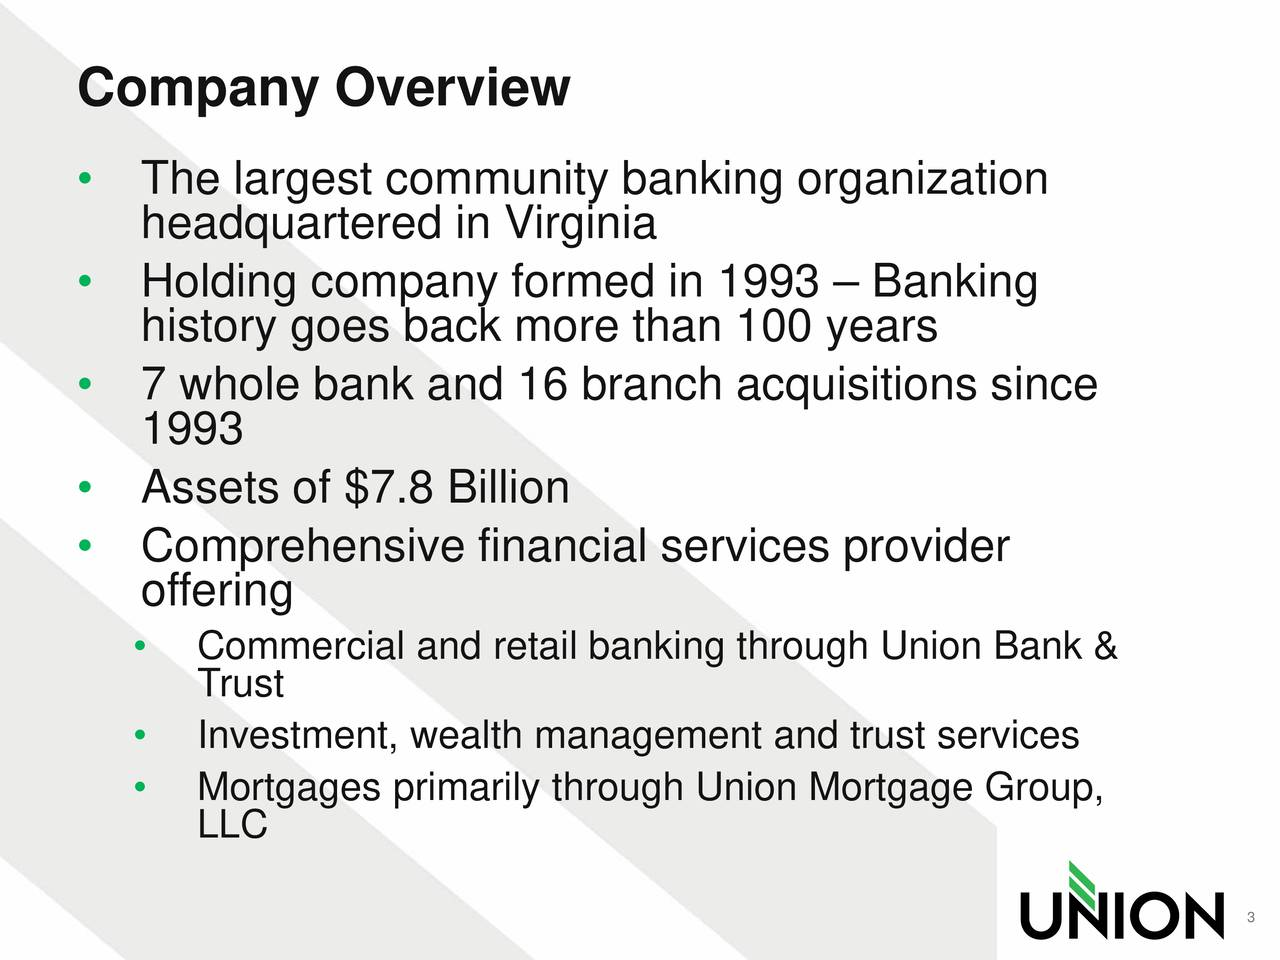 The largest community banking organization headquartered in Virginia Holding company formed in 1993  Banking history goes back more than 100 years 7 whole bank and 16 branch acquisitions since 1993 Assets of $7.8 Billion Comprehensive financial services provider offering Commercial and retail banking through Union Bank & Trust Investment, wealth management and trust services Mortgages primarily through Union Mortgage Group, LLC 3